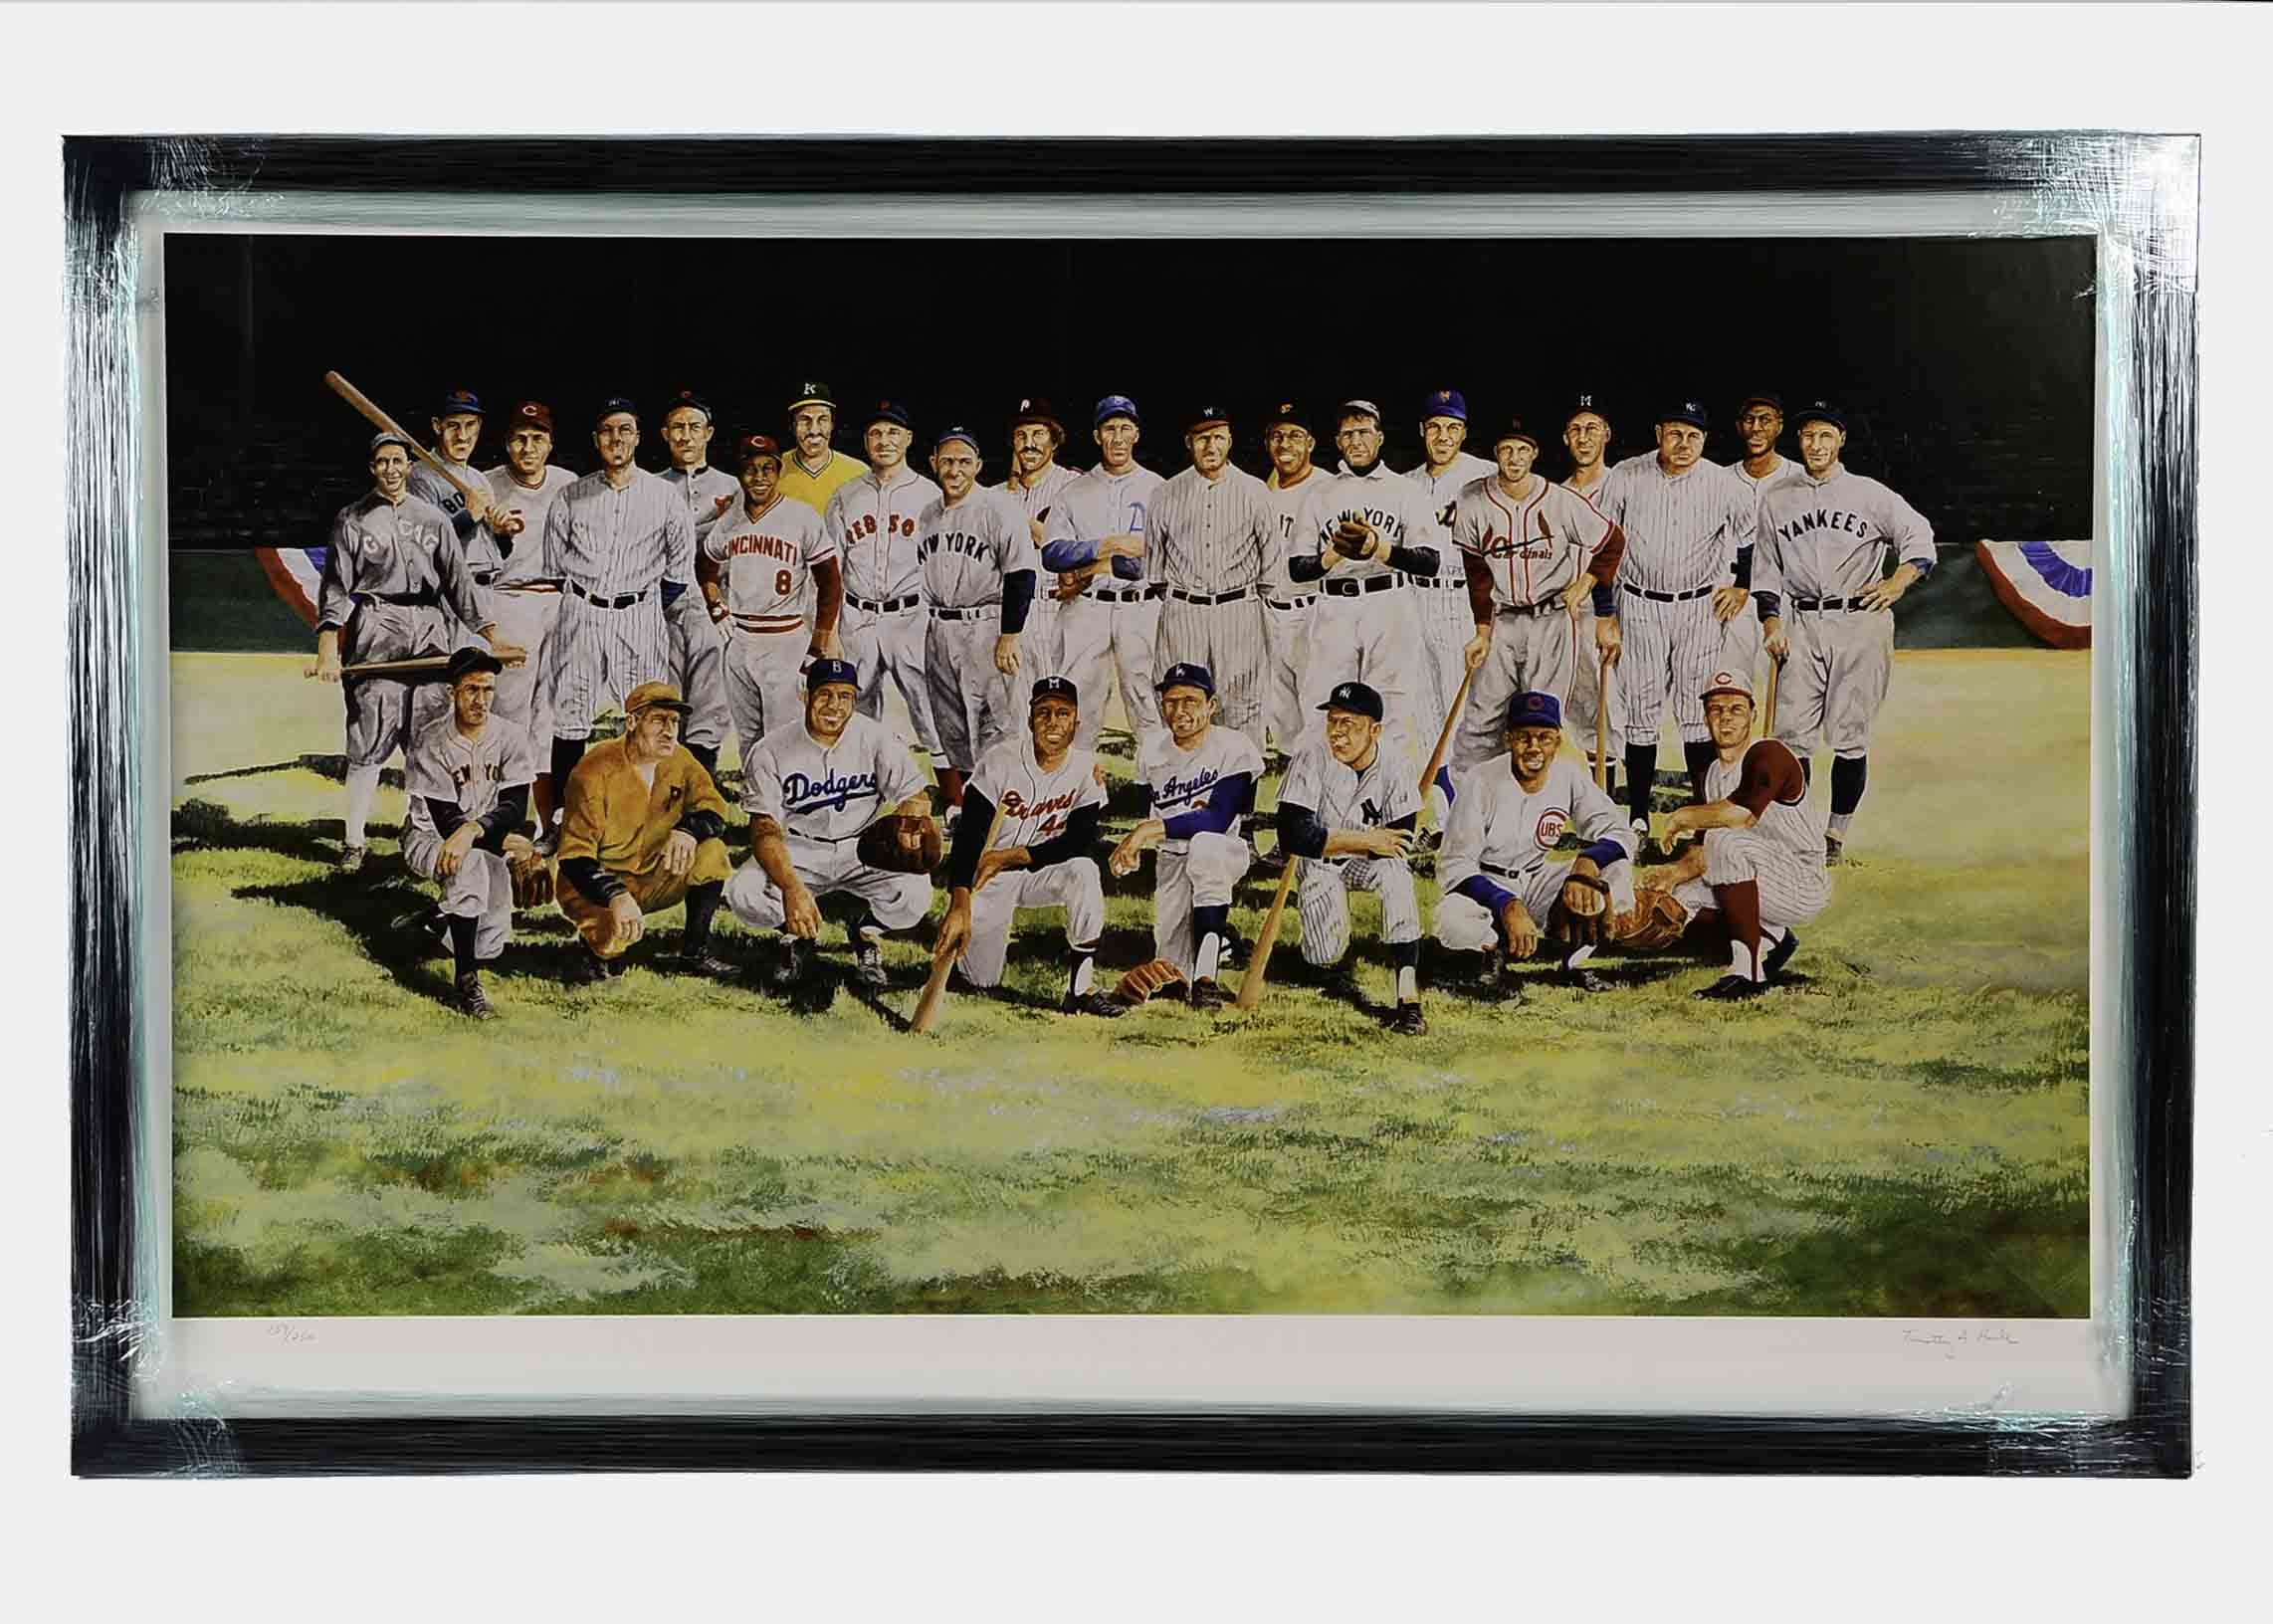 MLB Baseball s Greatest Rivalries Movie HD free download 720p